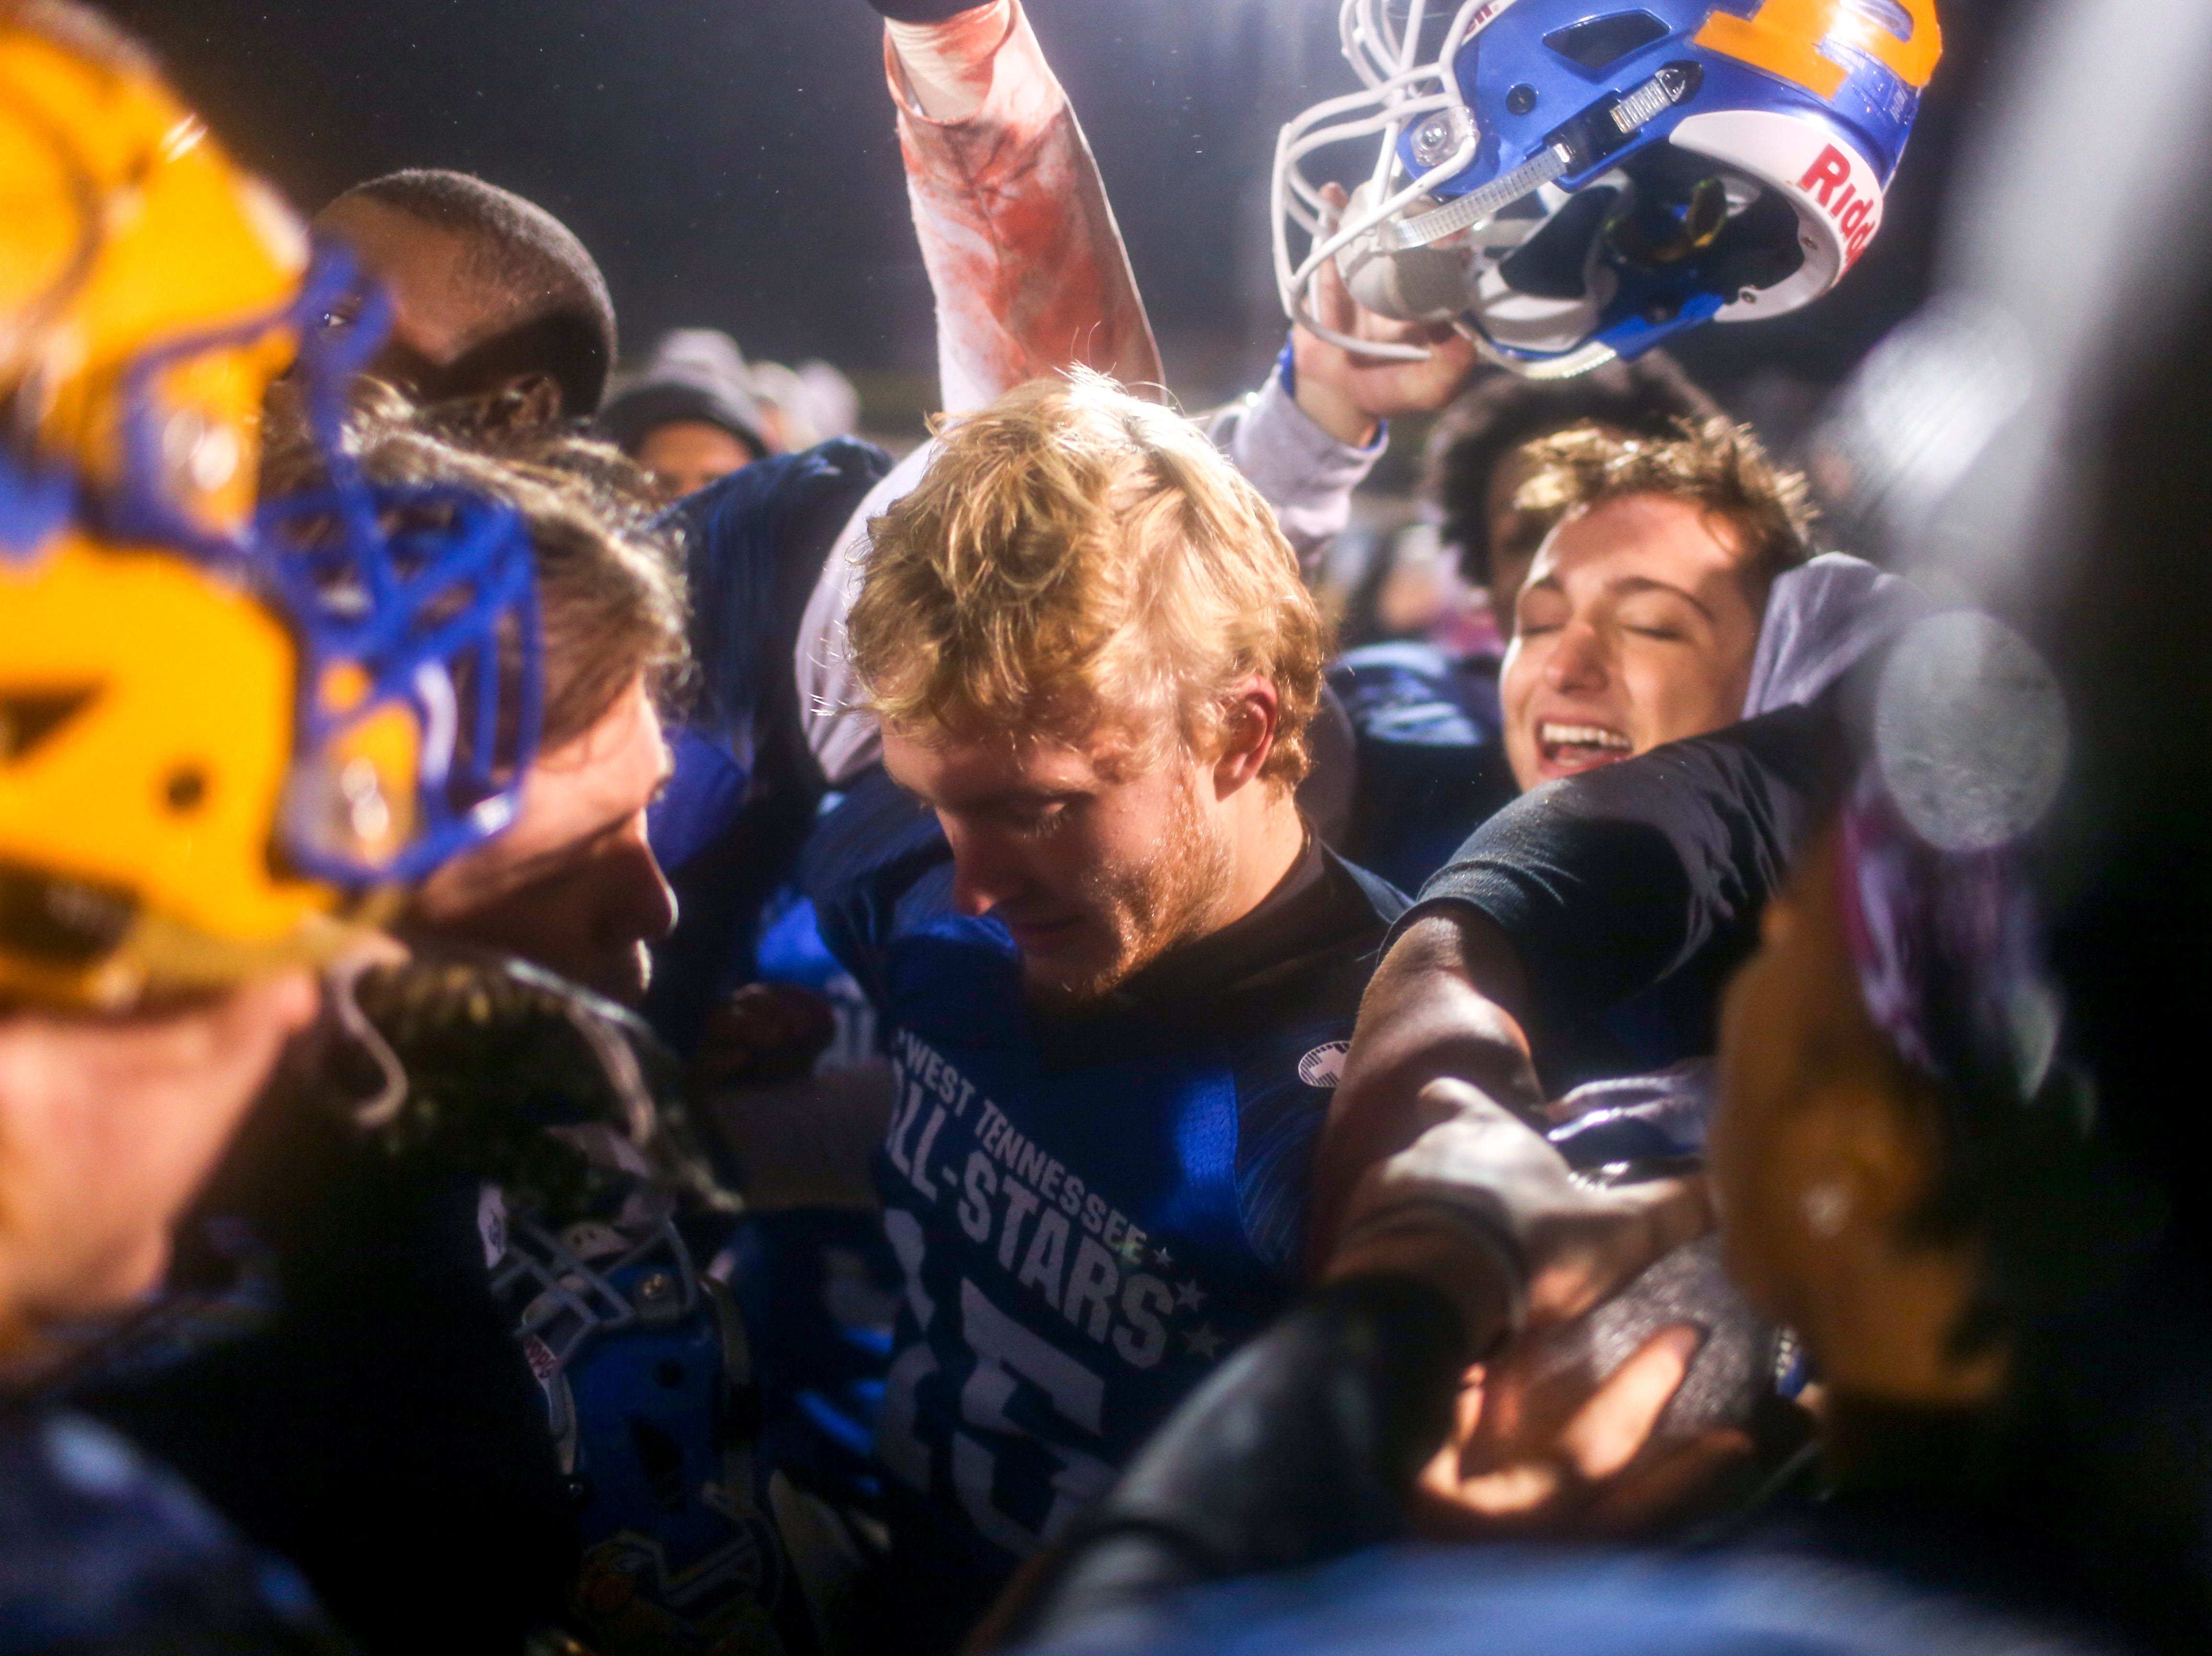 South players gather around and celebrate with the trophy during the West Tennessee All-Star football game at University School of Jackson in Jackson, Tenn., on Friday, Dec. 7, 2018.